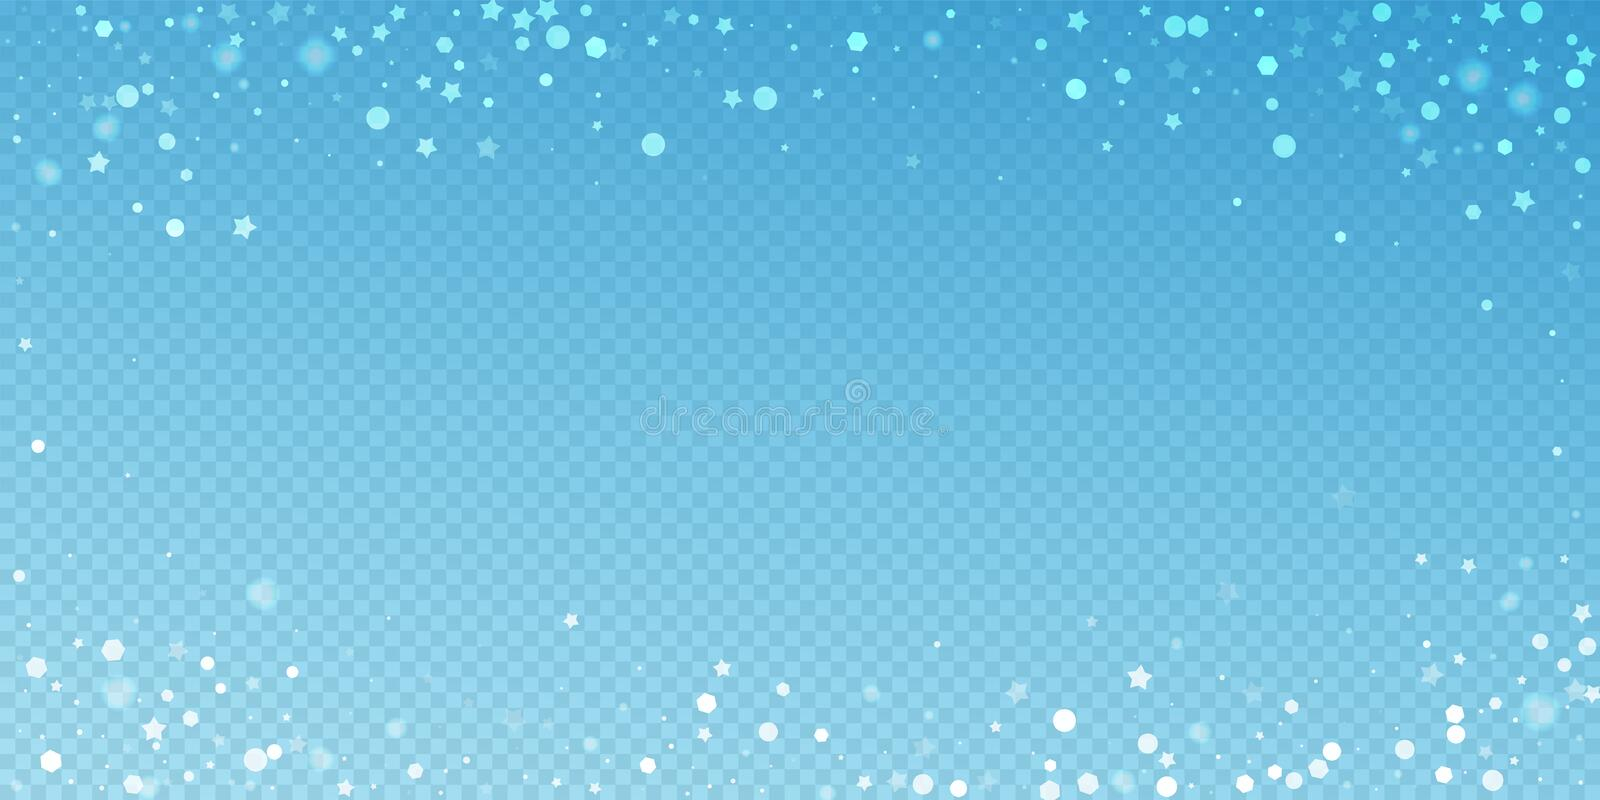 Magic stars random Christmas background. Subtle fl. Ying snow flakes and stars on blue transparent background. Bewitching winter silver snowflake overlay vector illustration